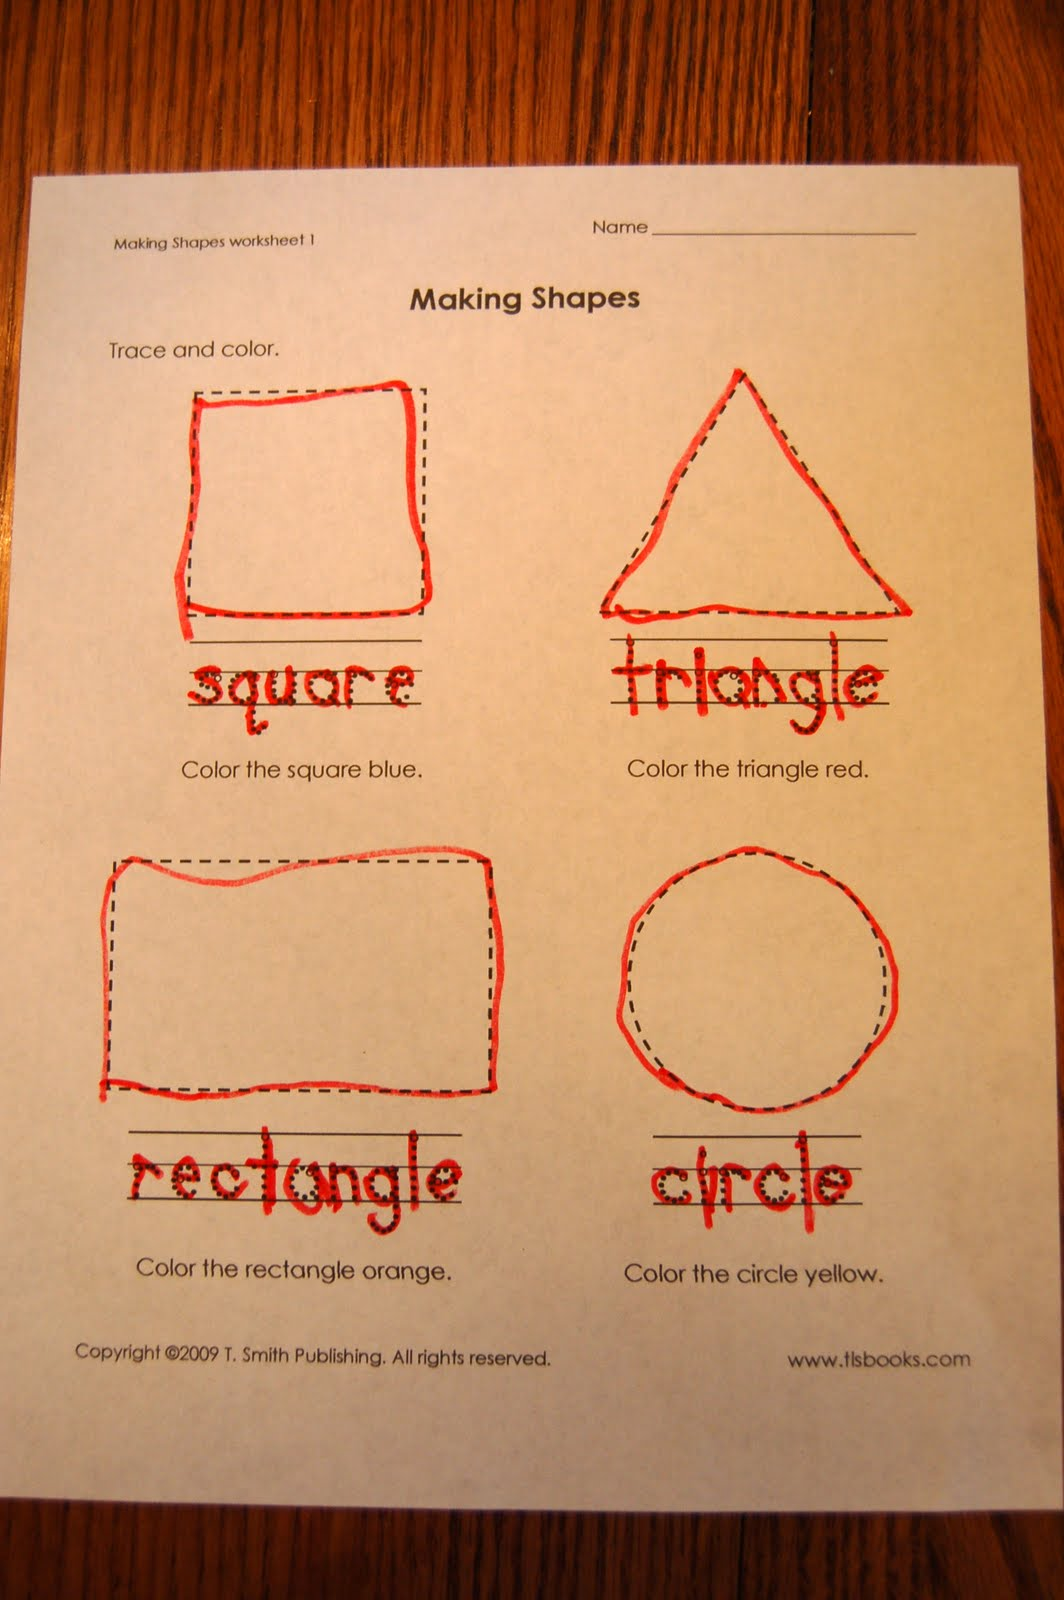 D E E A Bf Eb A B as well Count The Hanging Stars Worksheet additionally D Shapes Geometric furthermore Shape Search Printable Worksheet Color together with Donkey Craft X. on heart shape worksheets